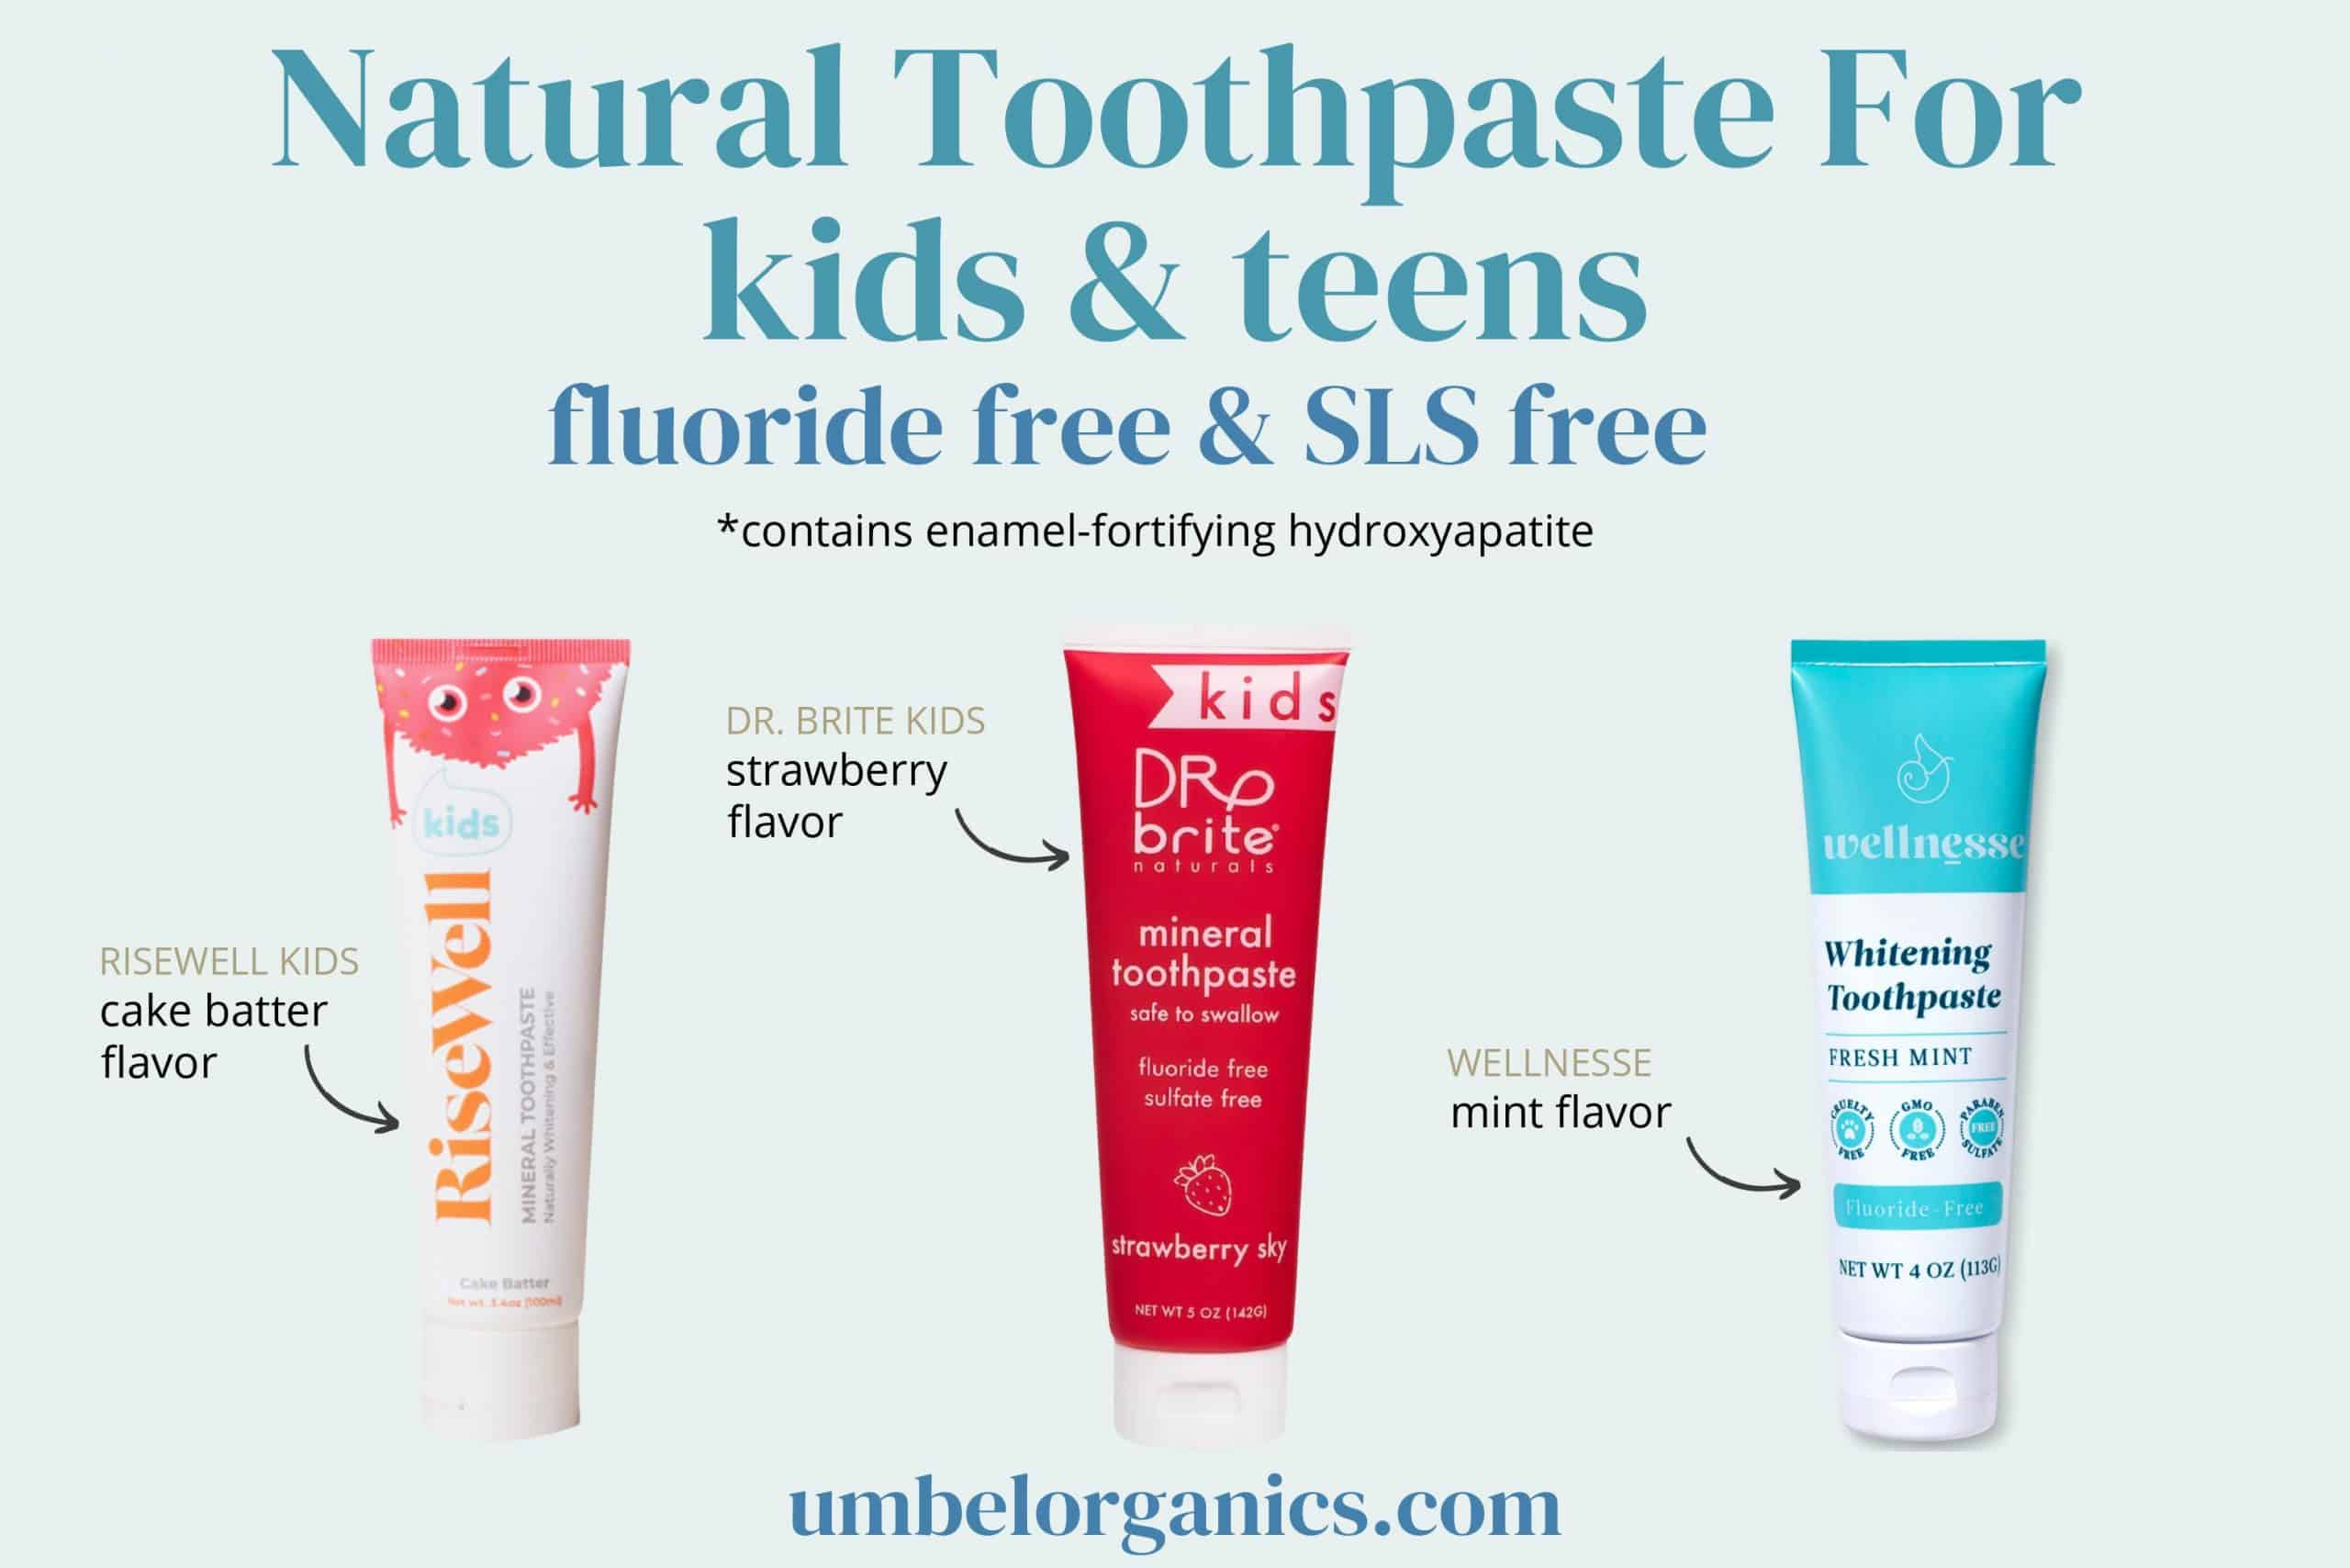 3 brands of natural hydroxyapatite toothpaste for kids & teens